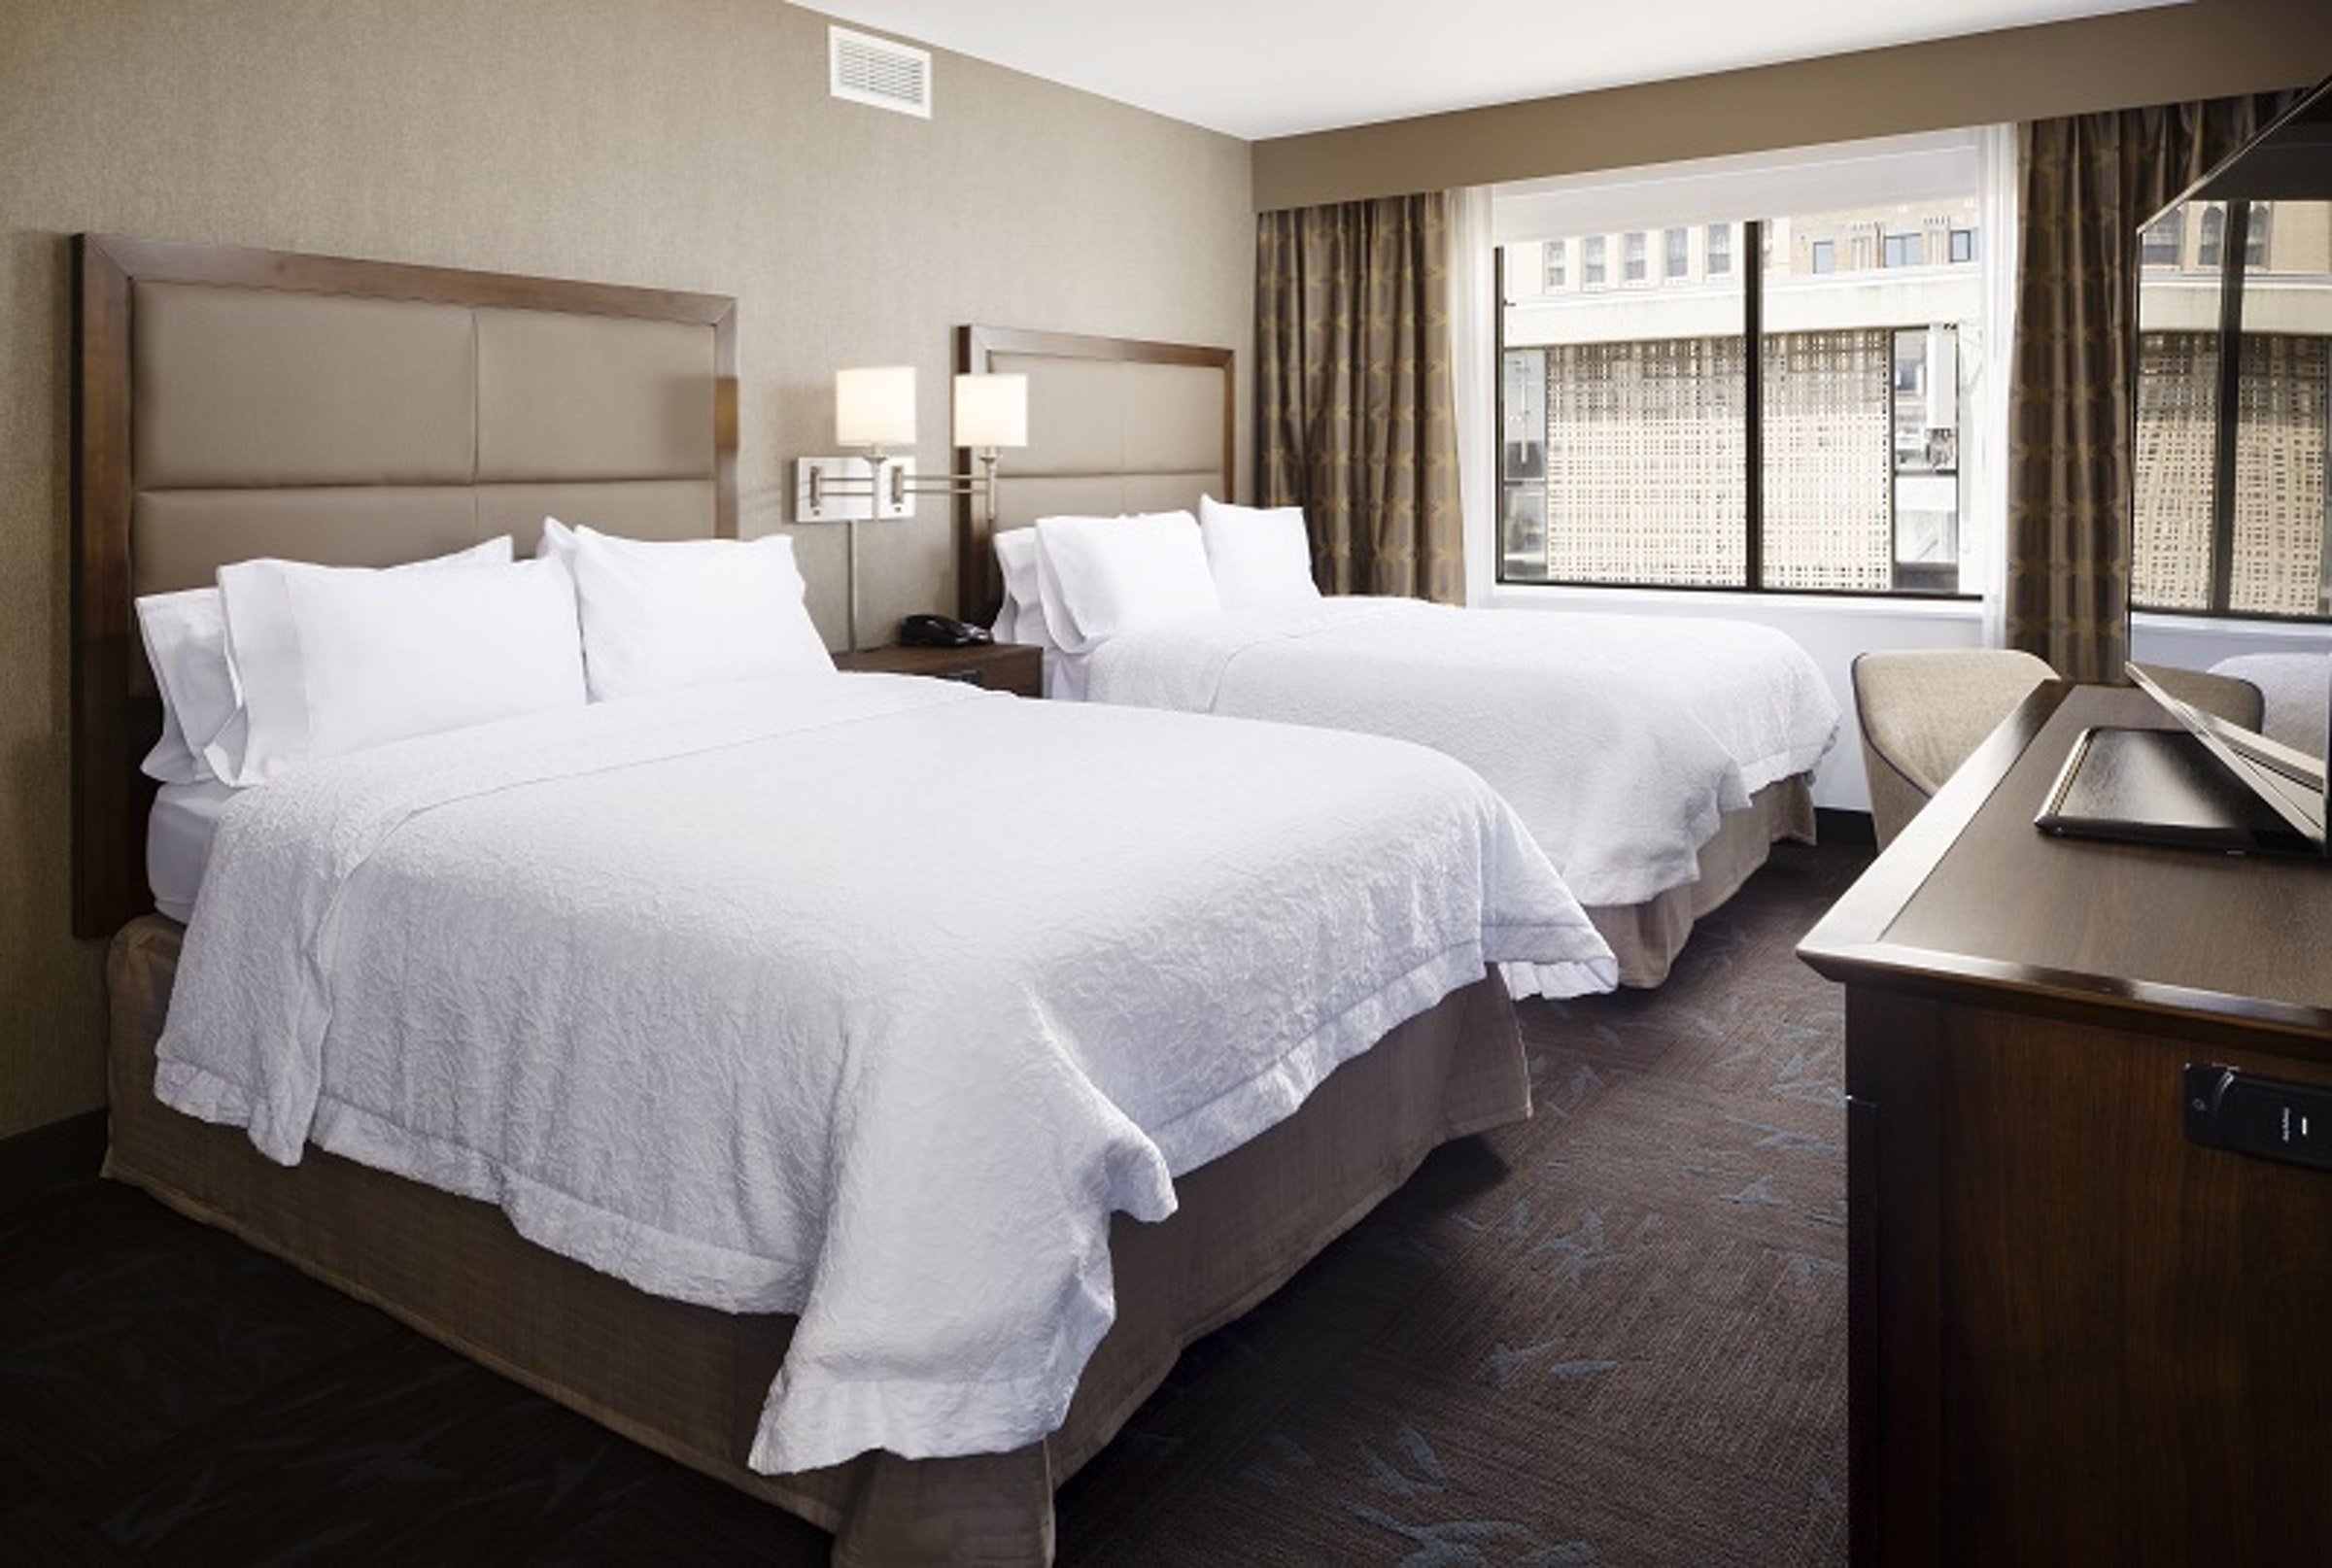 Hampton Inn & Suites Dallas Downtown in Beyond Dallas